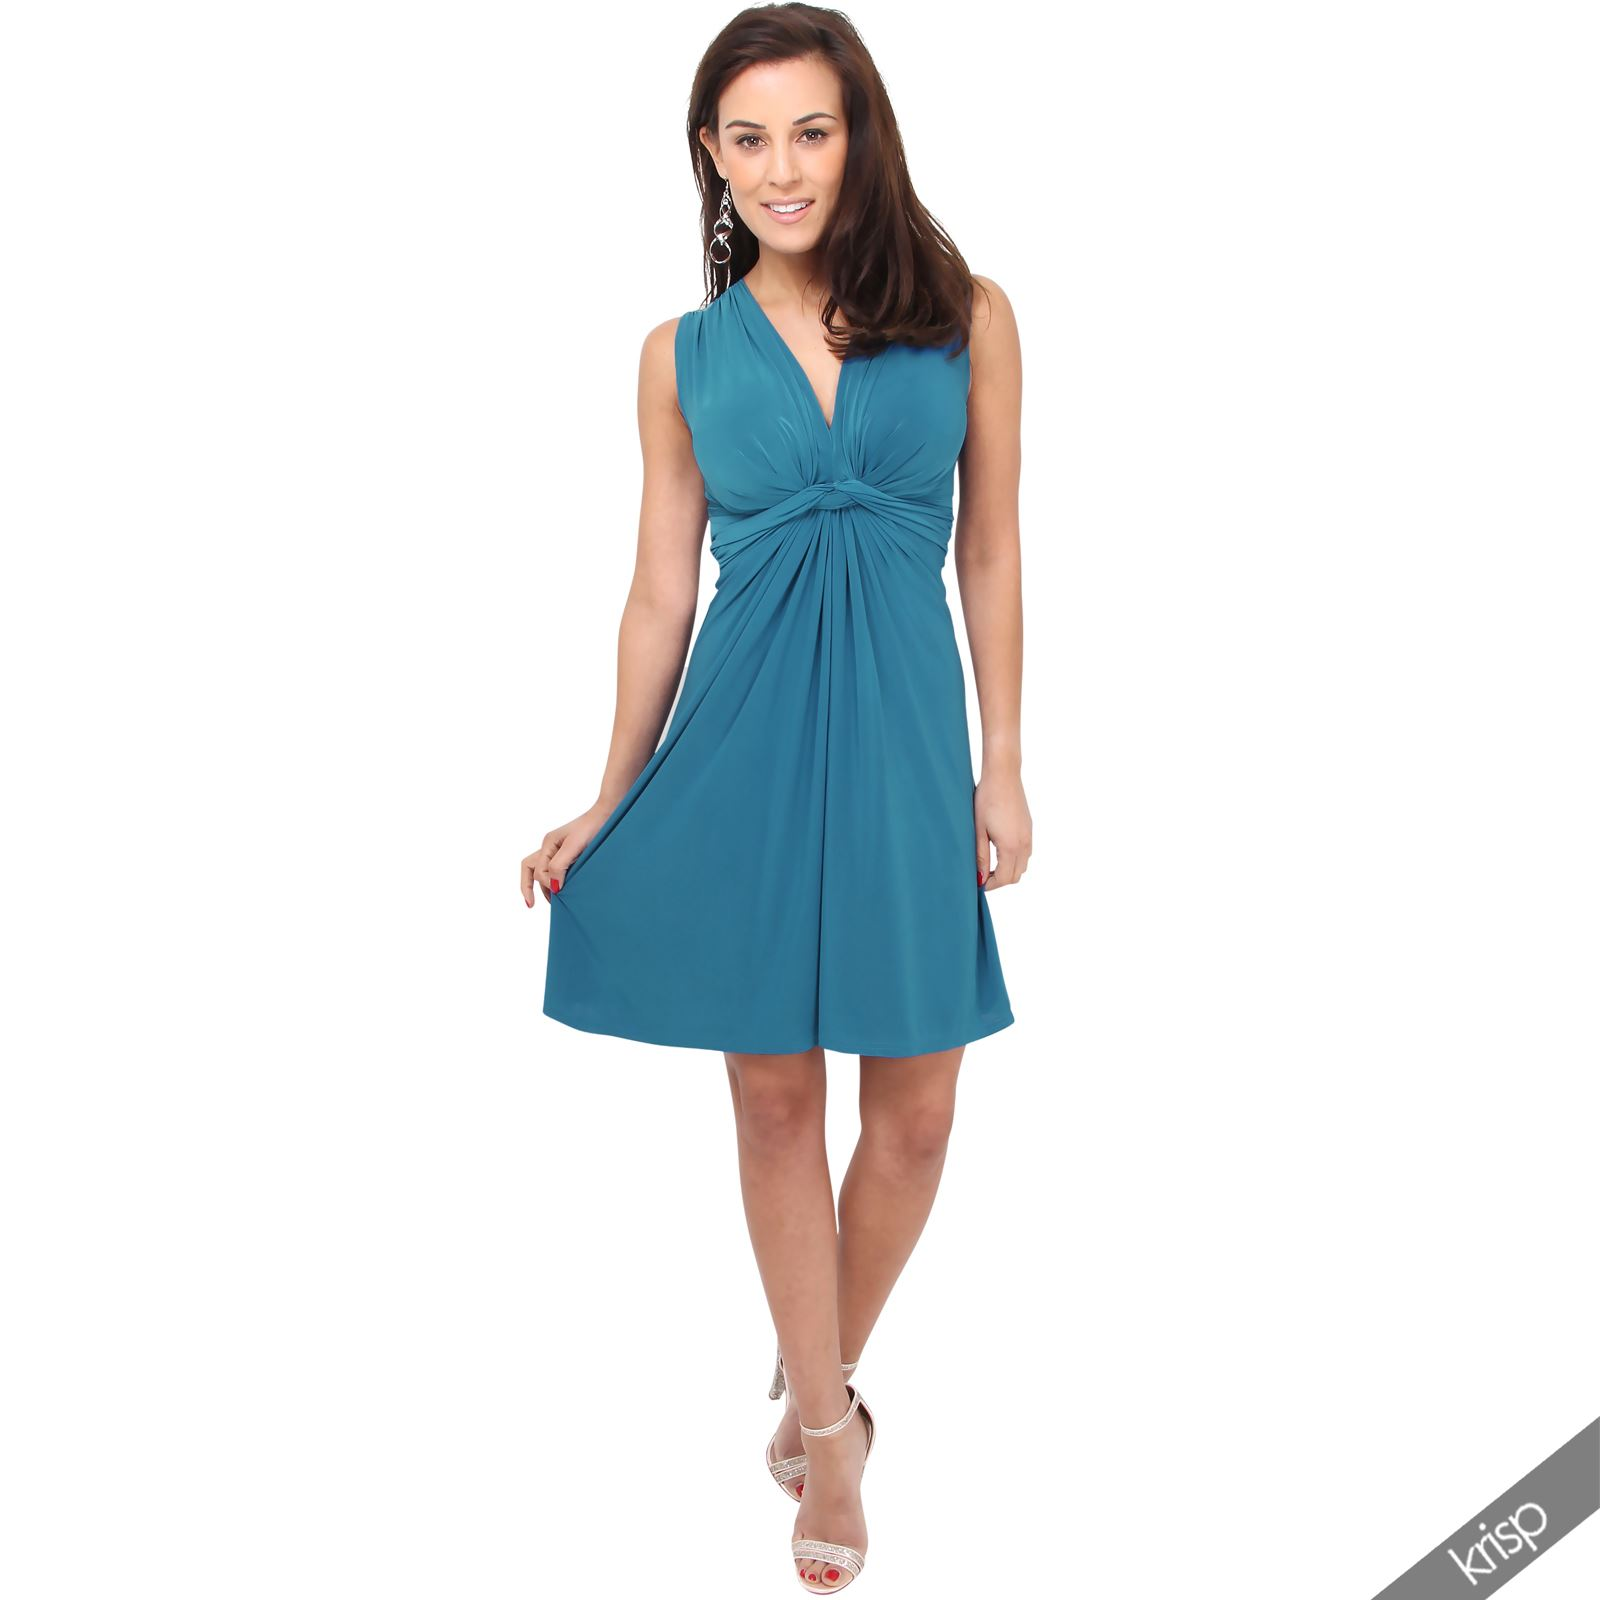 90e25d0a94 Womens Ruched Twist Knot Front Mini Dress Tie Belted USA